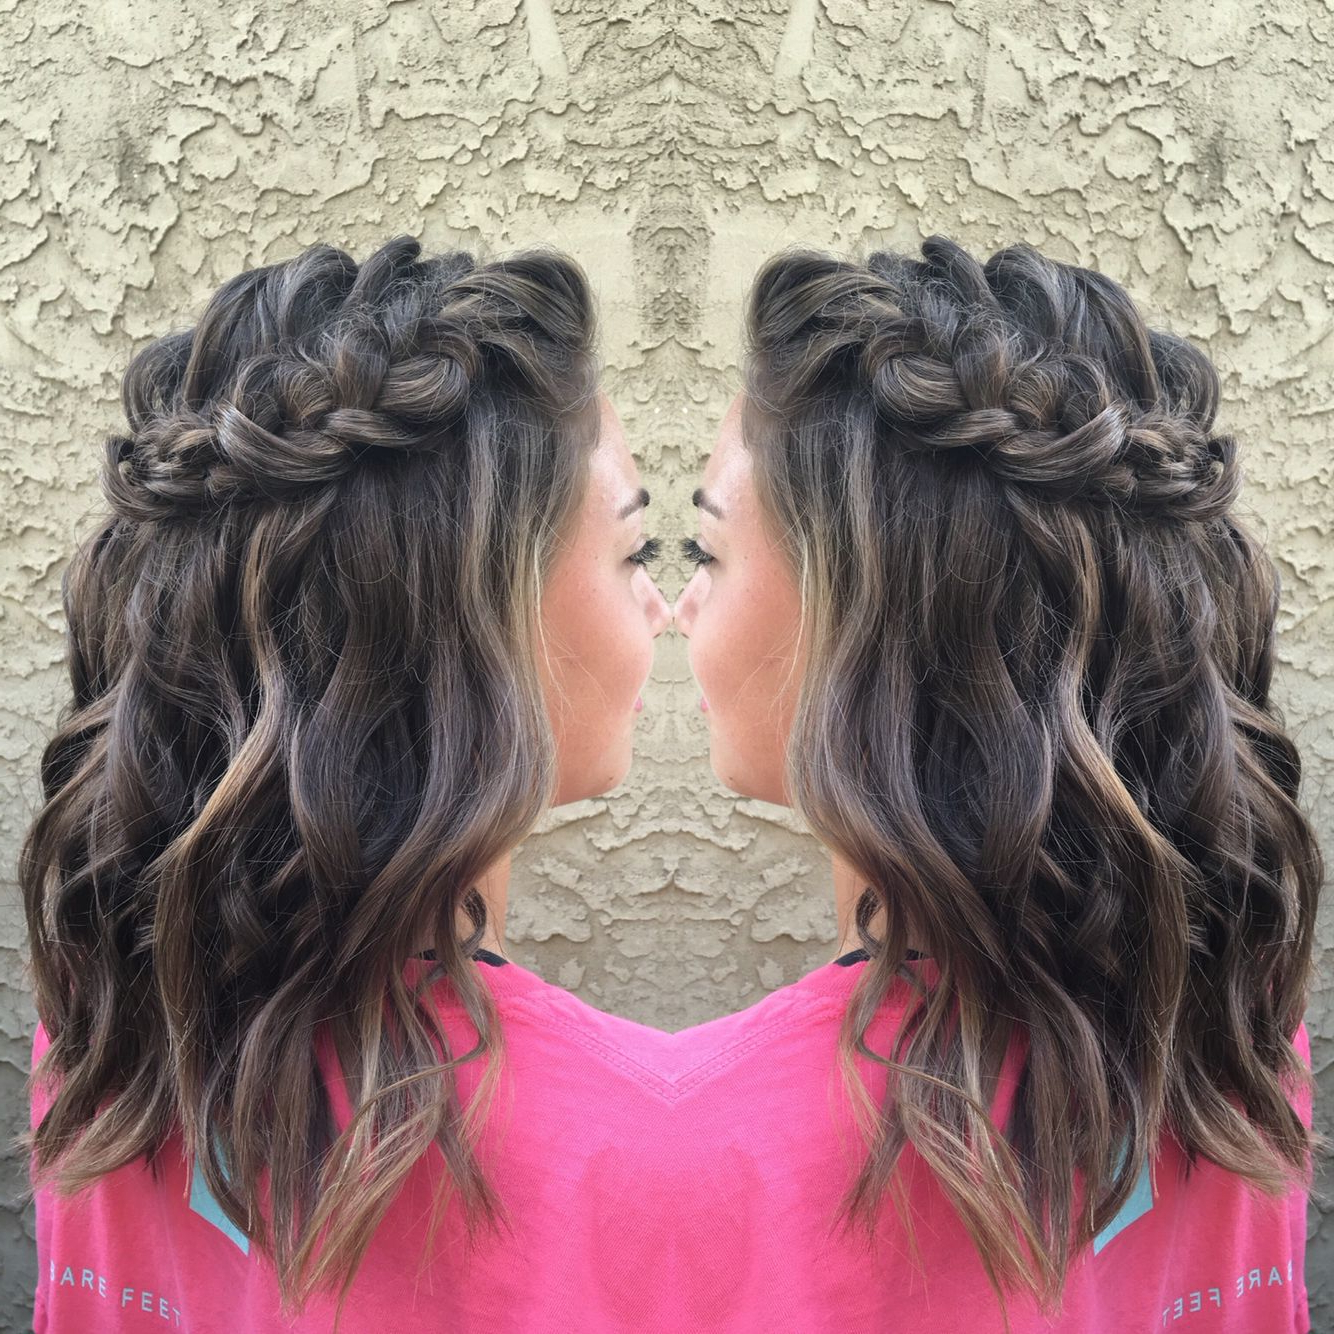 23 Most Stylish Homecoming Hairstyles | Hair And Beauty | Pinterest In Homecoming Short Hairstyles (View 3 of 25)